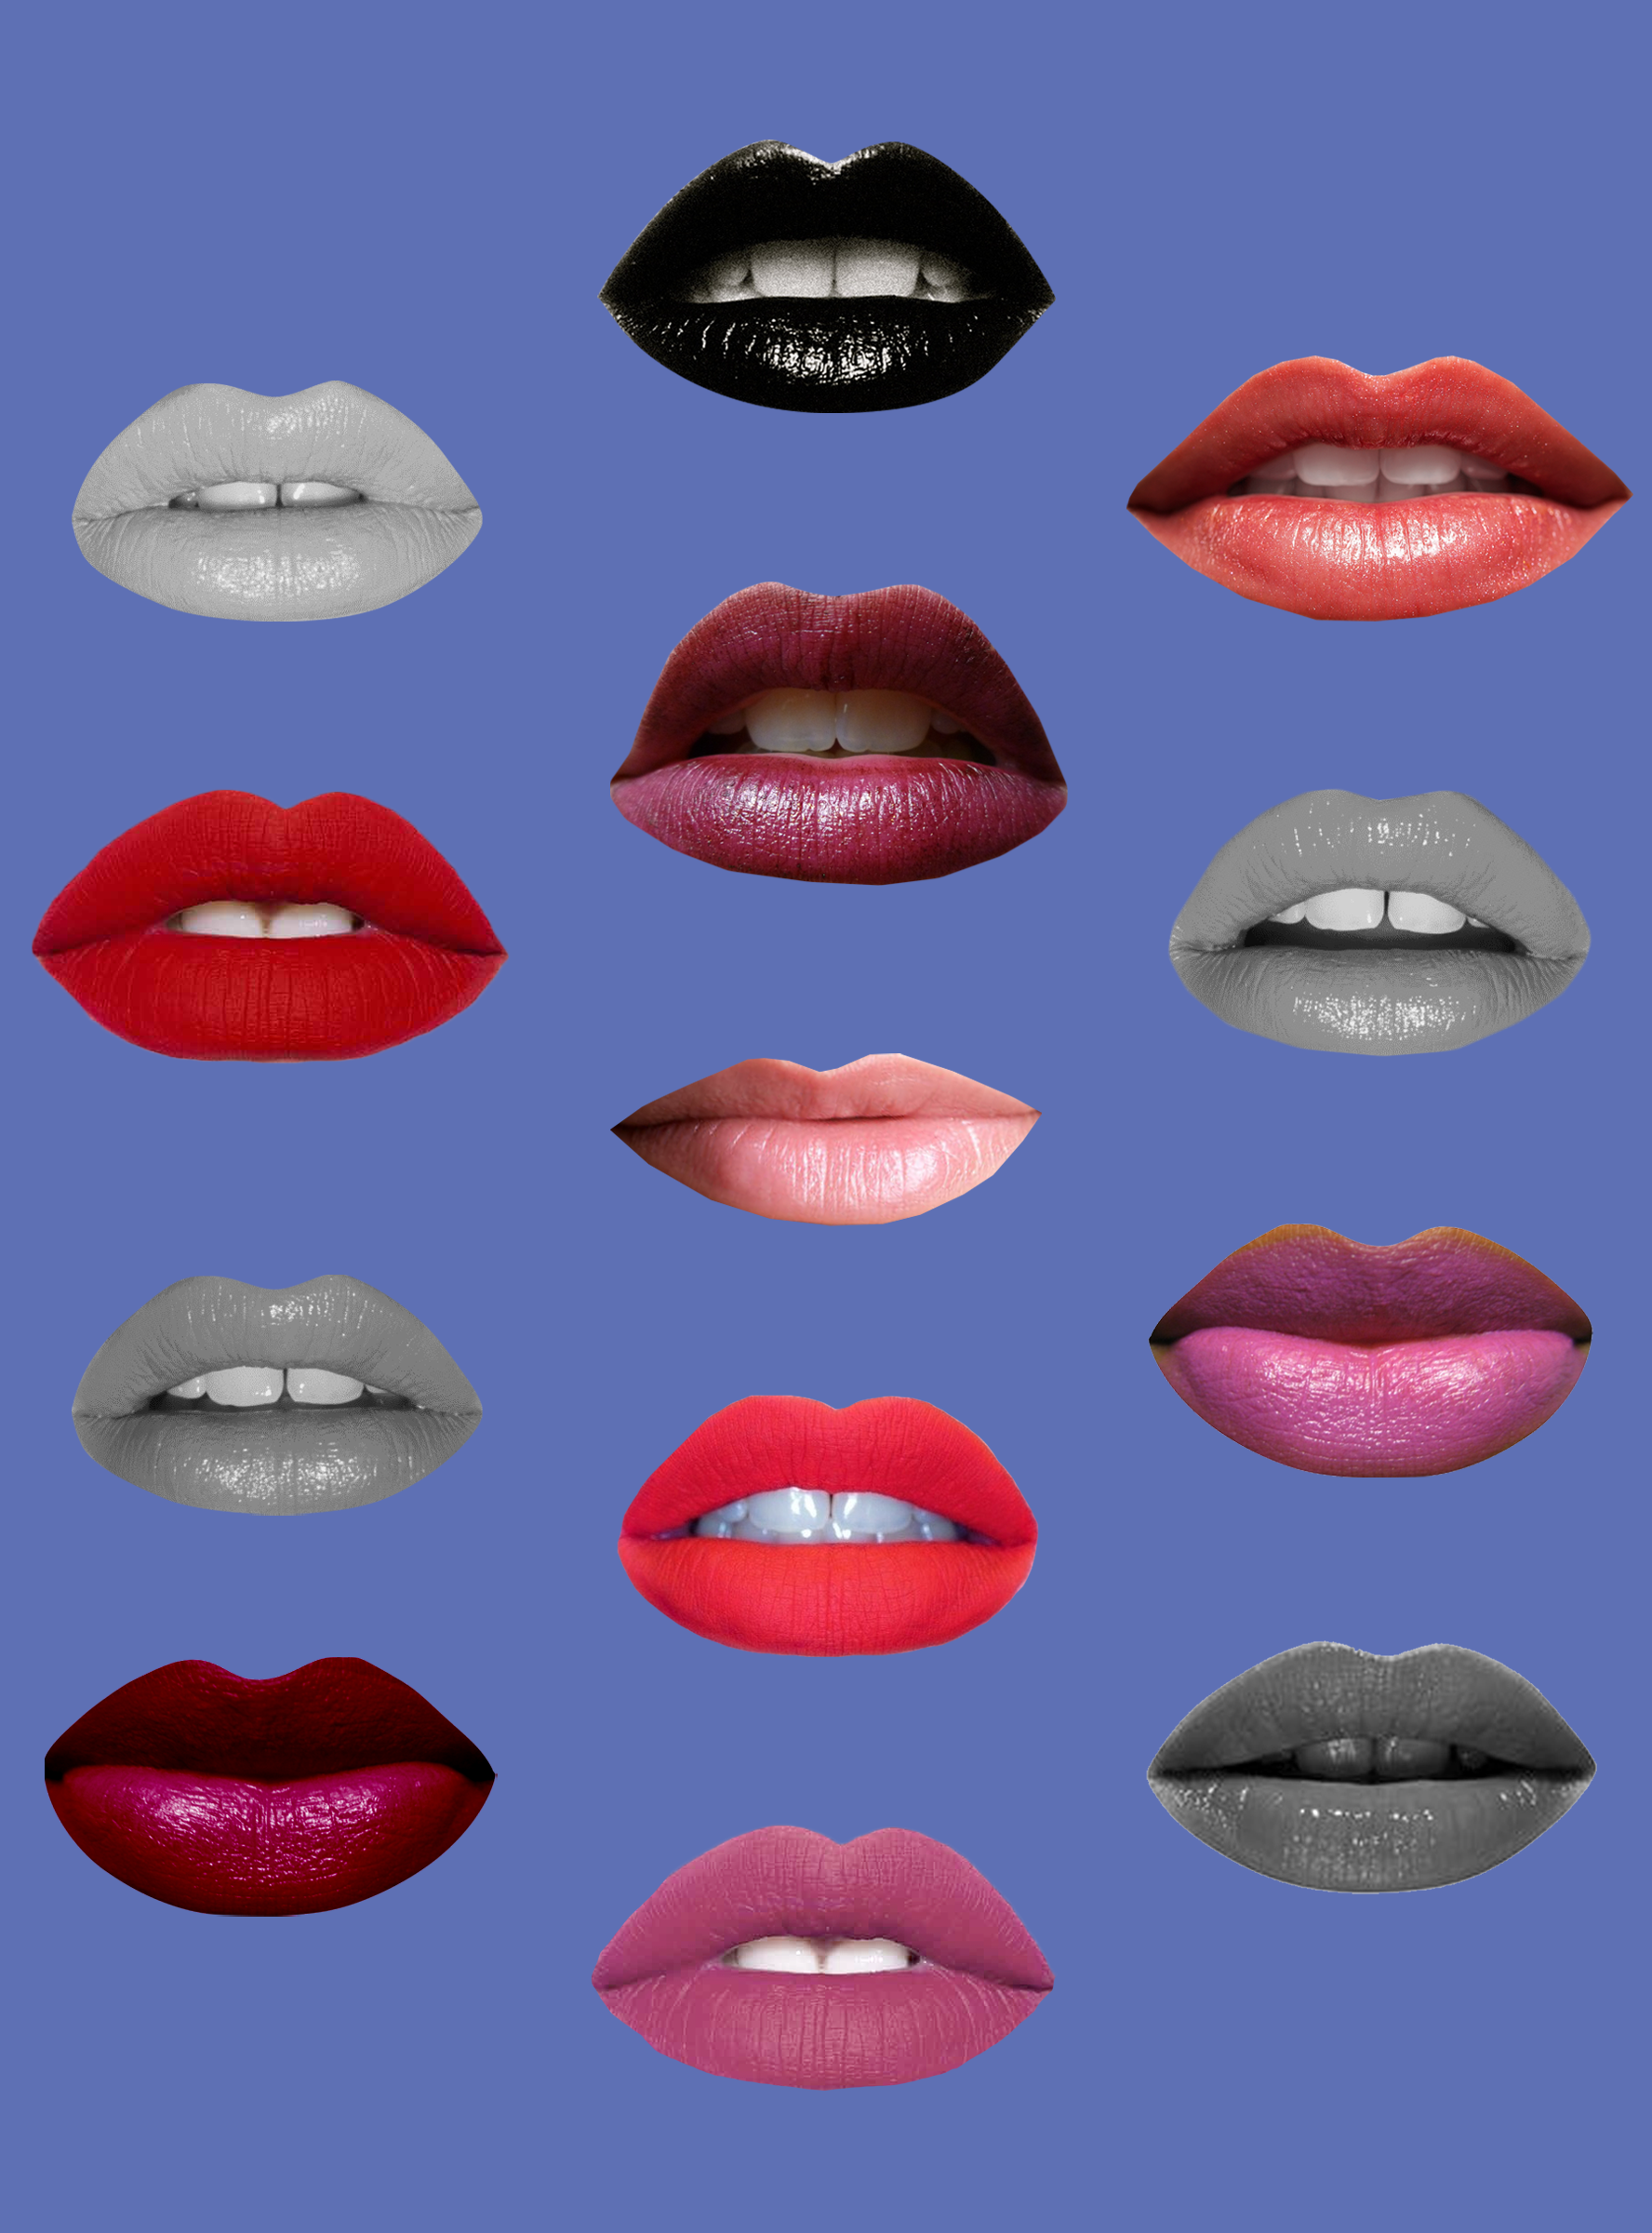 Lip Threading Is Taking Over From Filler According To The Pros Lip Fillers Lips Lips Fuller